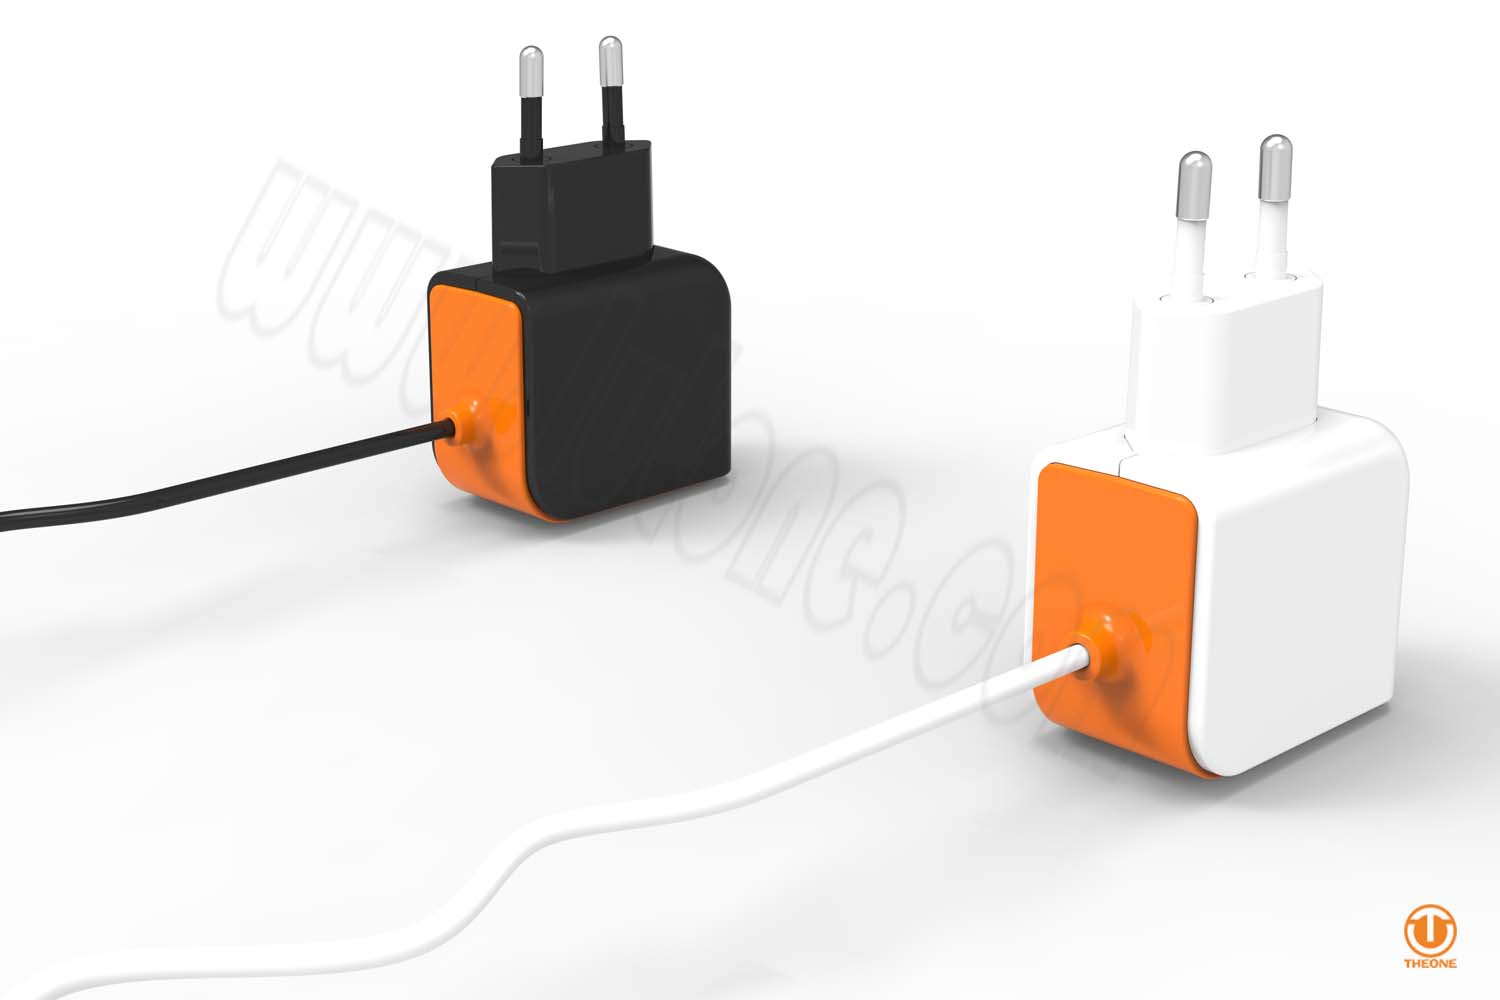 tc02b1-3 wired wall charger